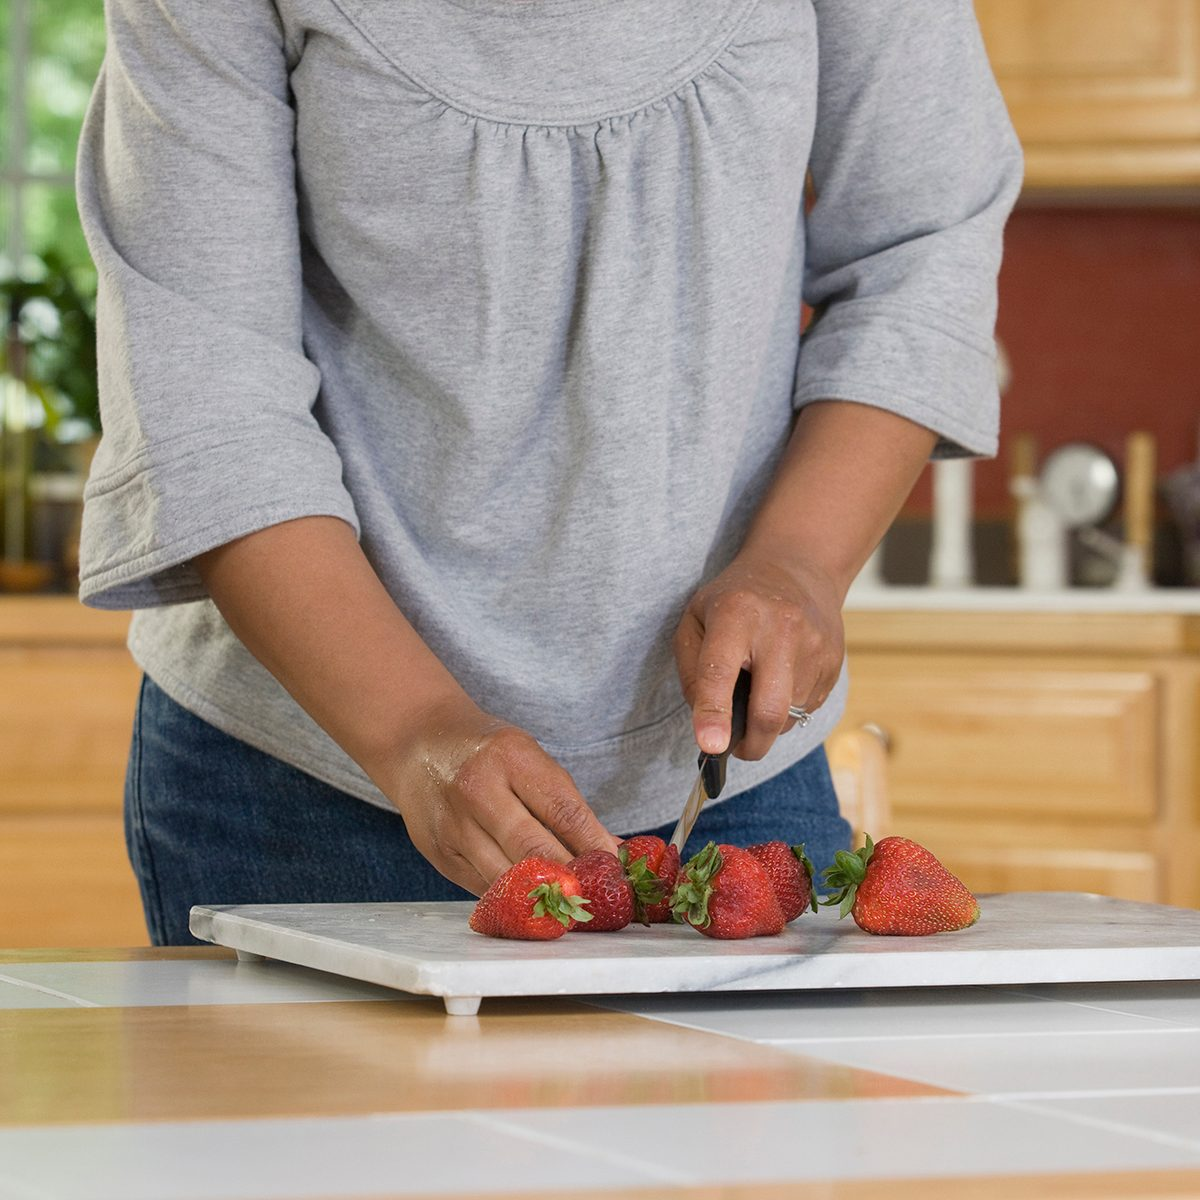 Hispanic woman cutting strawberries in the kitchen